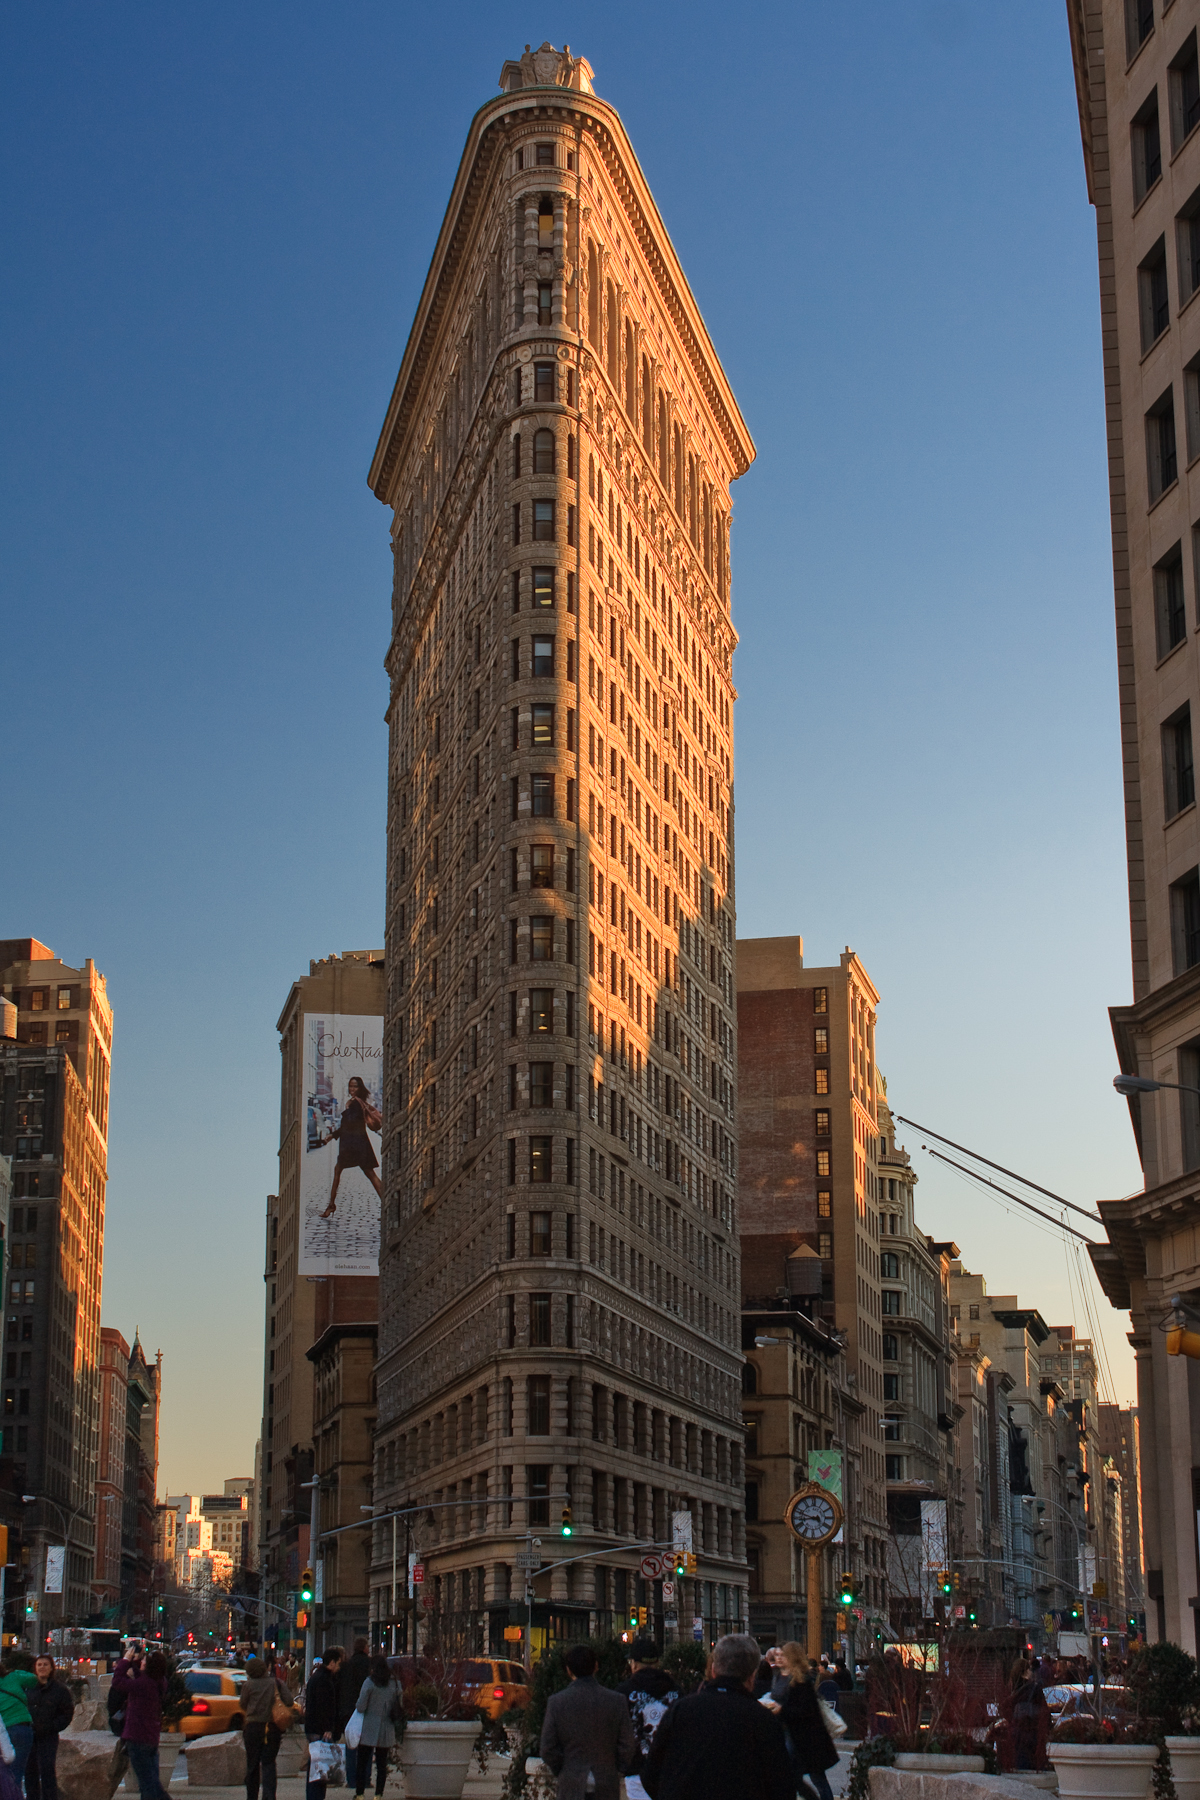 """Flatiron Building"" by Drew XXX via Flickr Creative Commons"